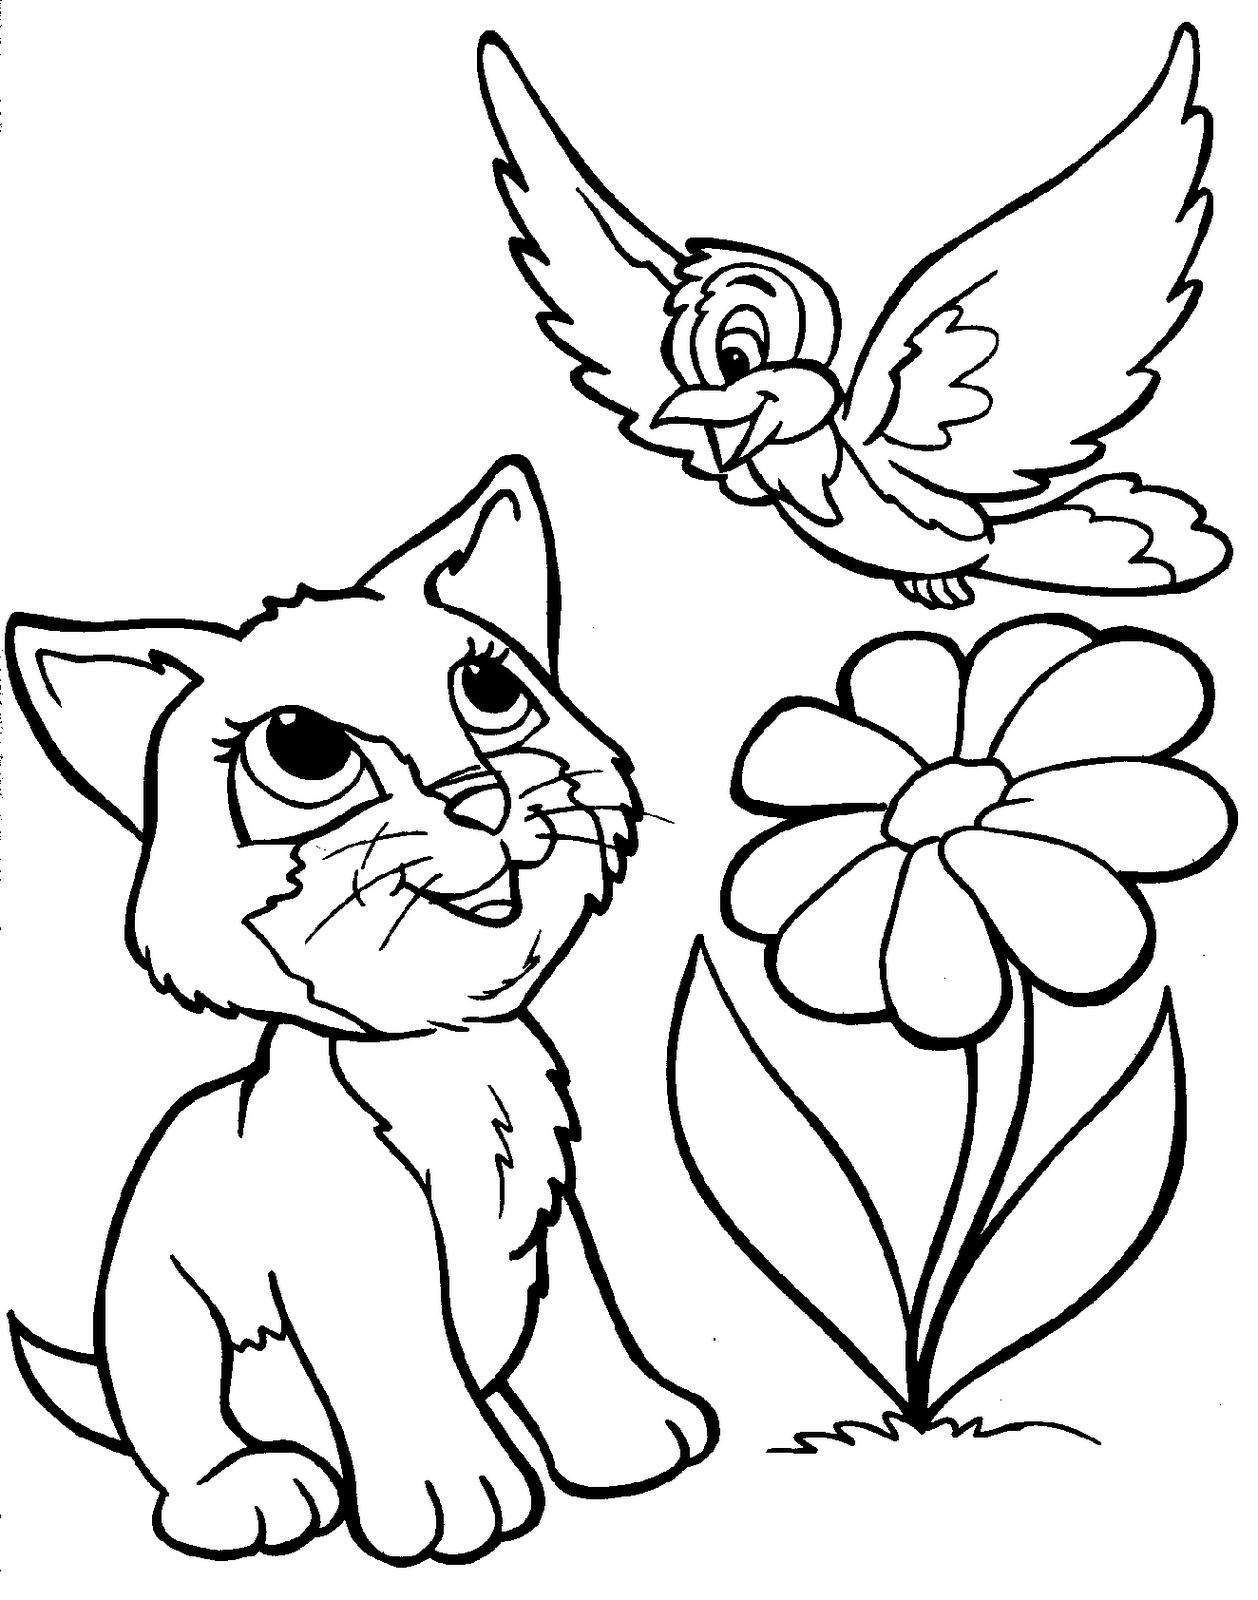 Animal Coloring Pages | 10 Cute Animals Coloring Pages | Coloring ...